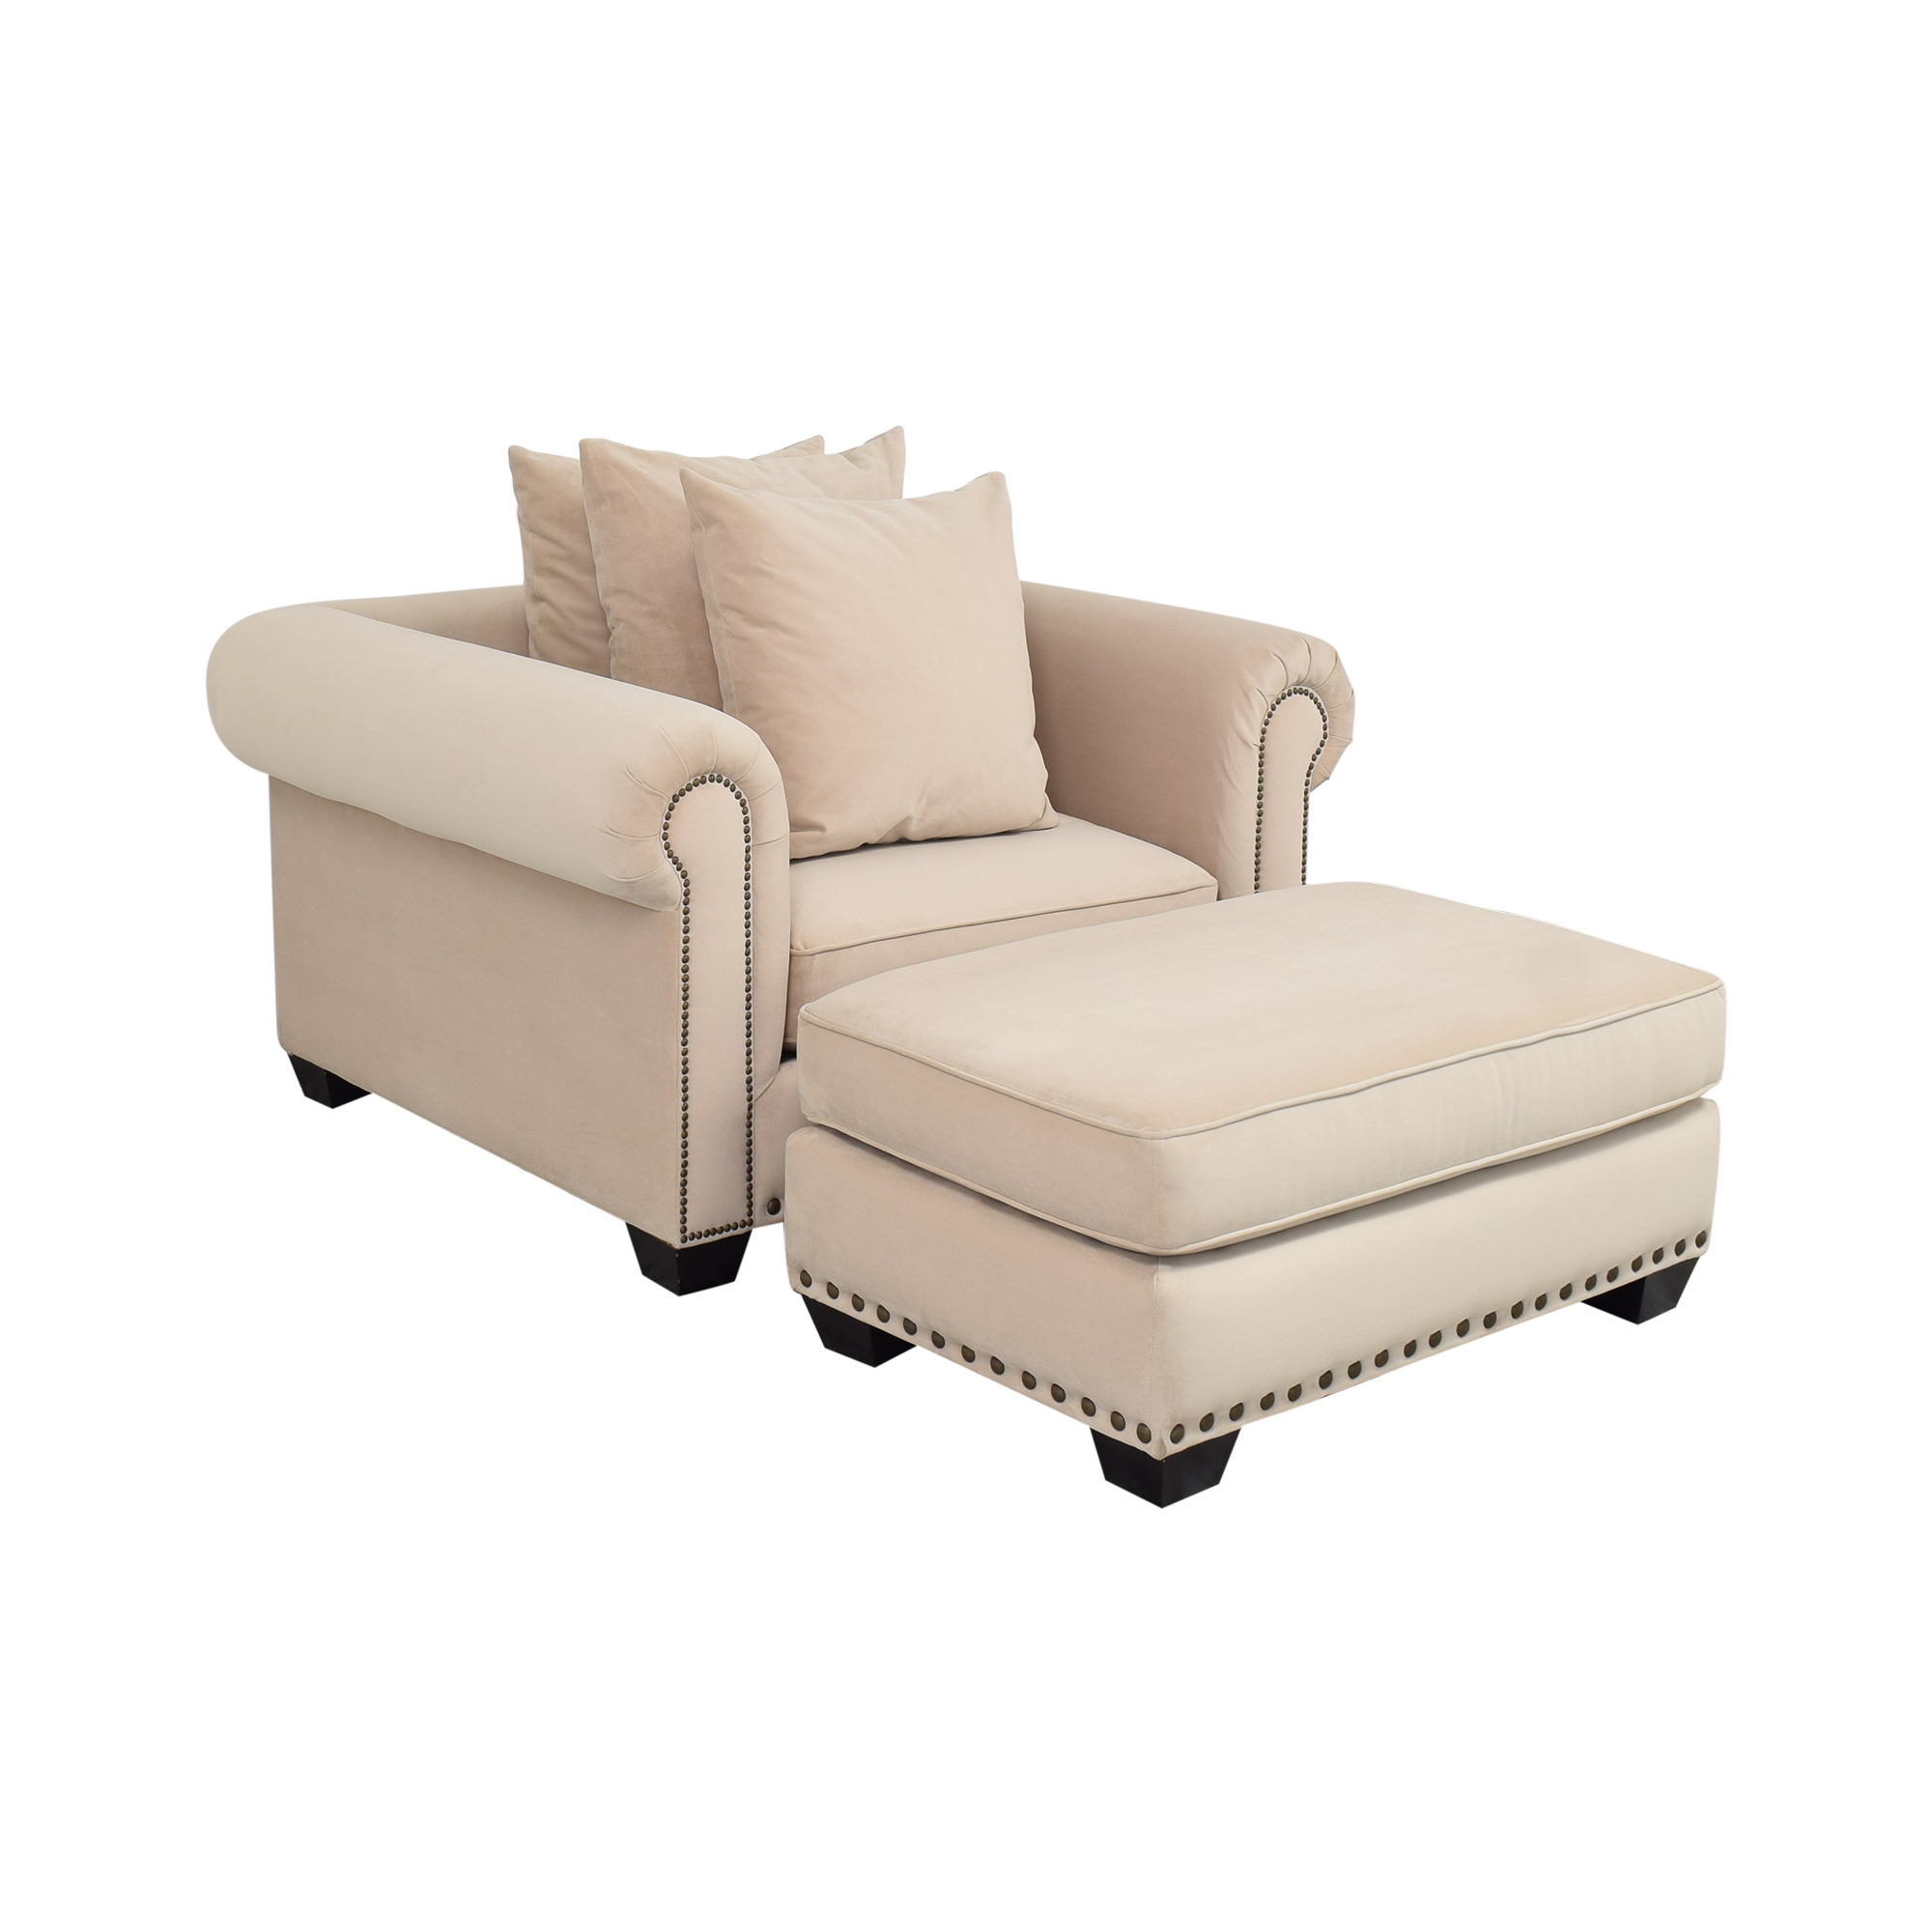 Z Gallerie Z Gallerie Chair and Ottoman on sale